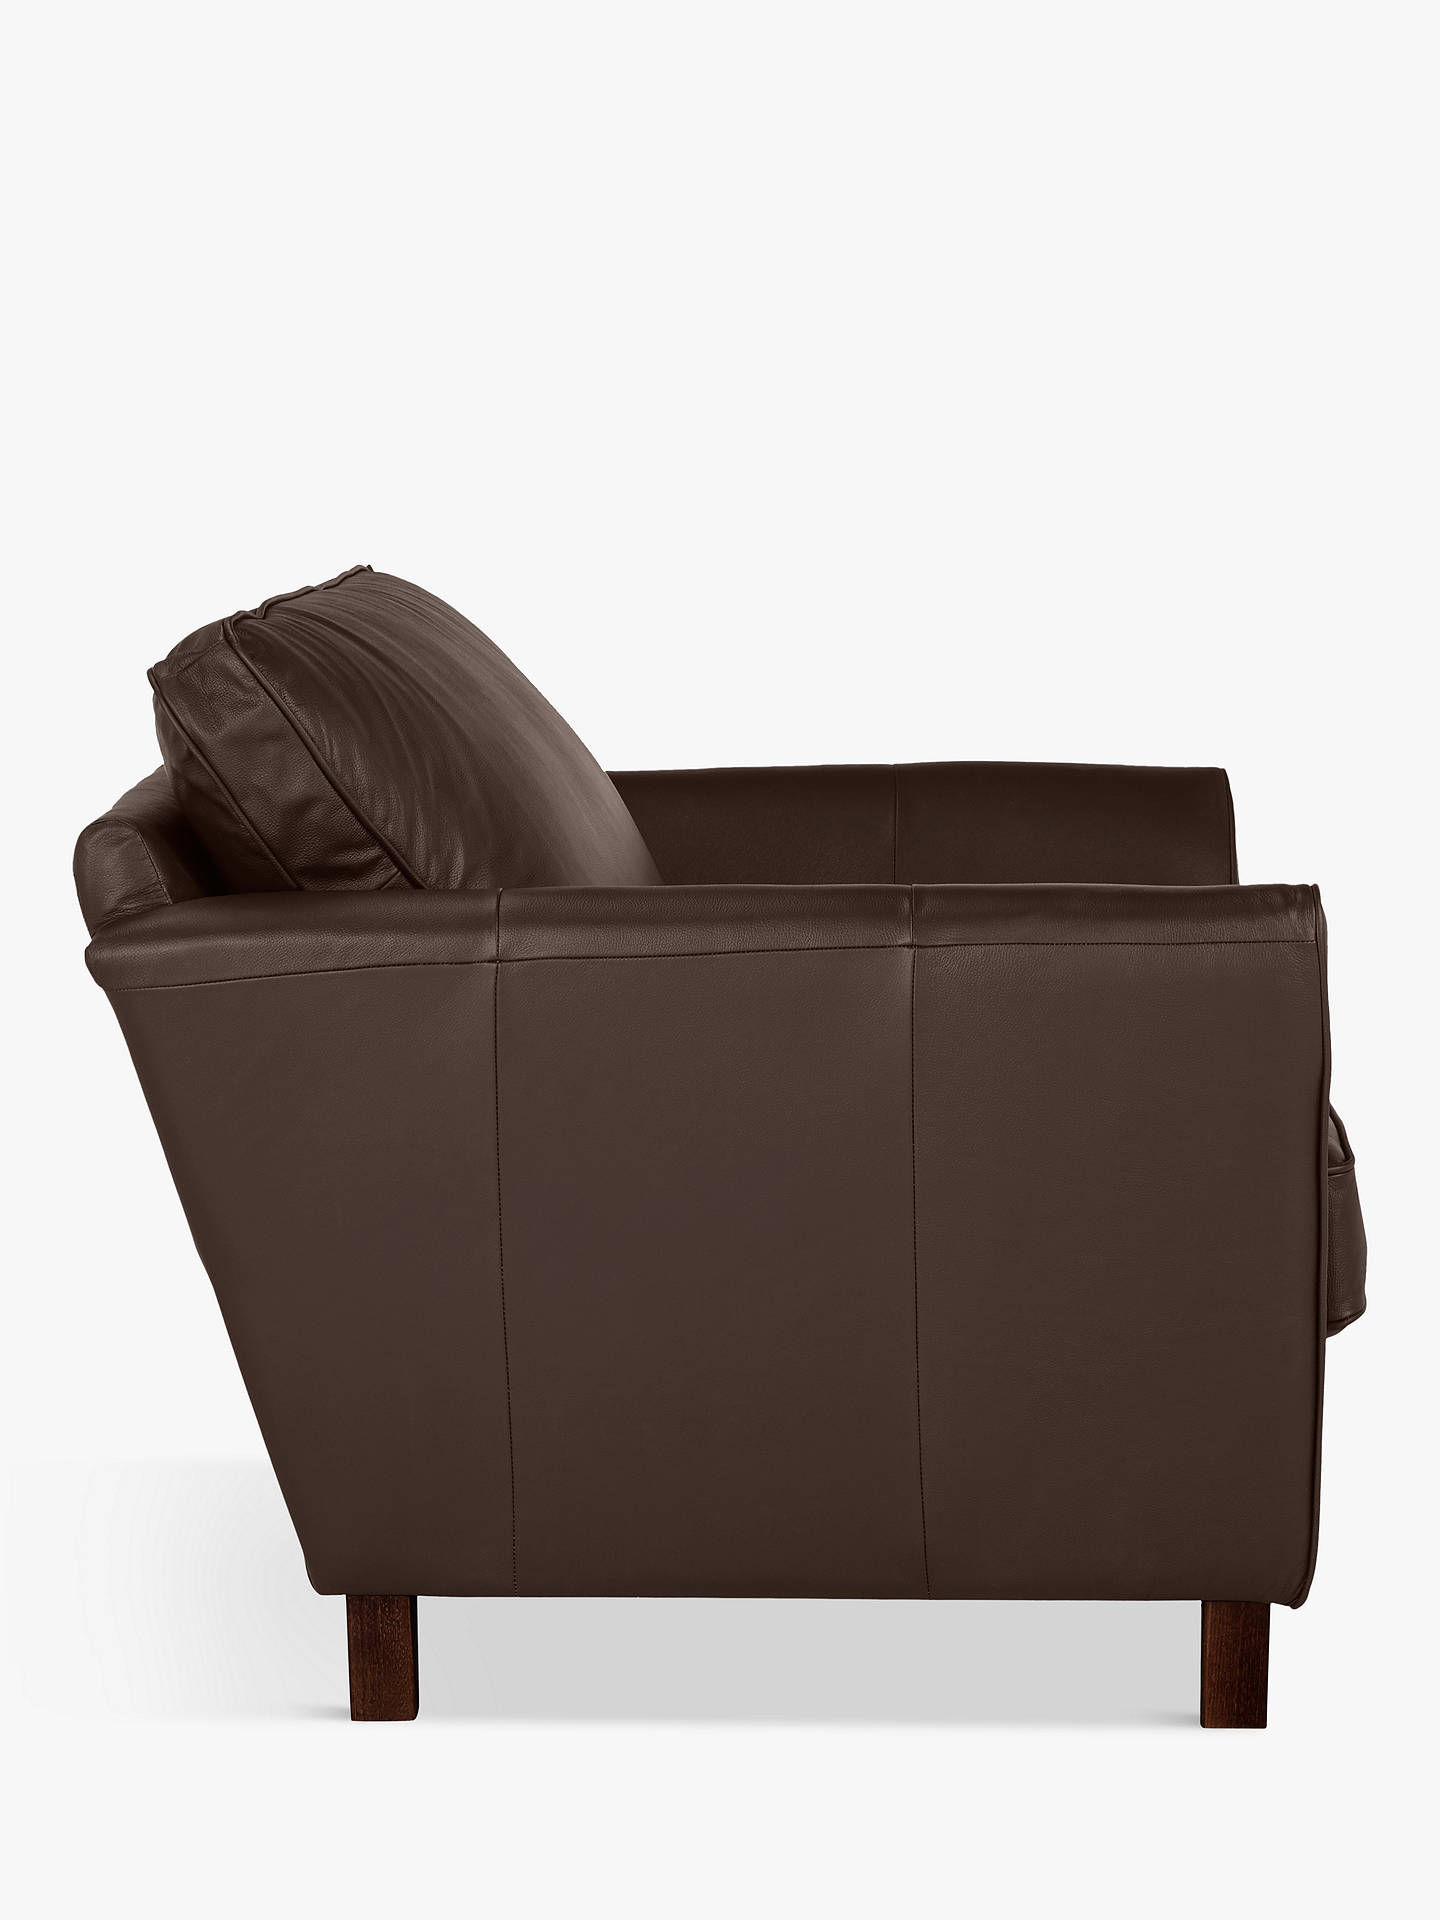 Buy John Lewis & Partners Oslo Leather Snuggler, Dark Leg, Contempo Dark Chocolate Online at johnlewis.com